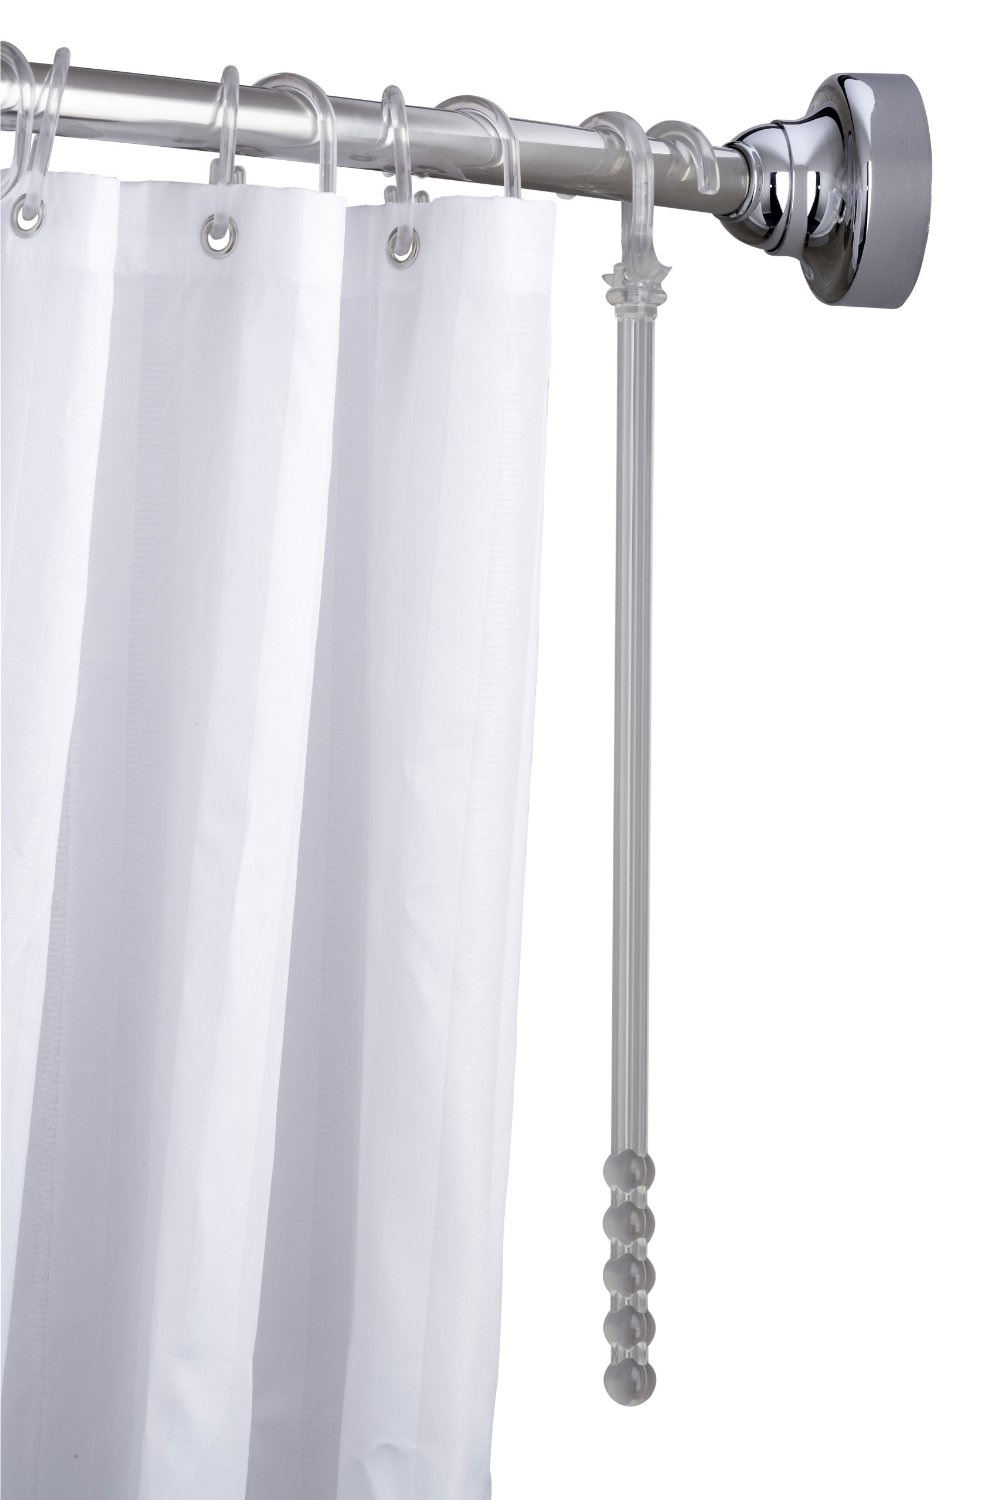 croydex professional space saver shower curtain rod ad179441